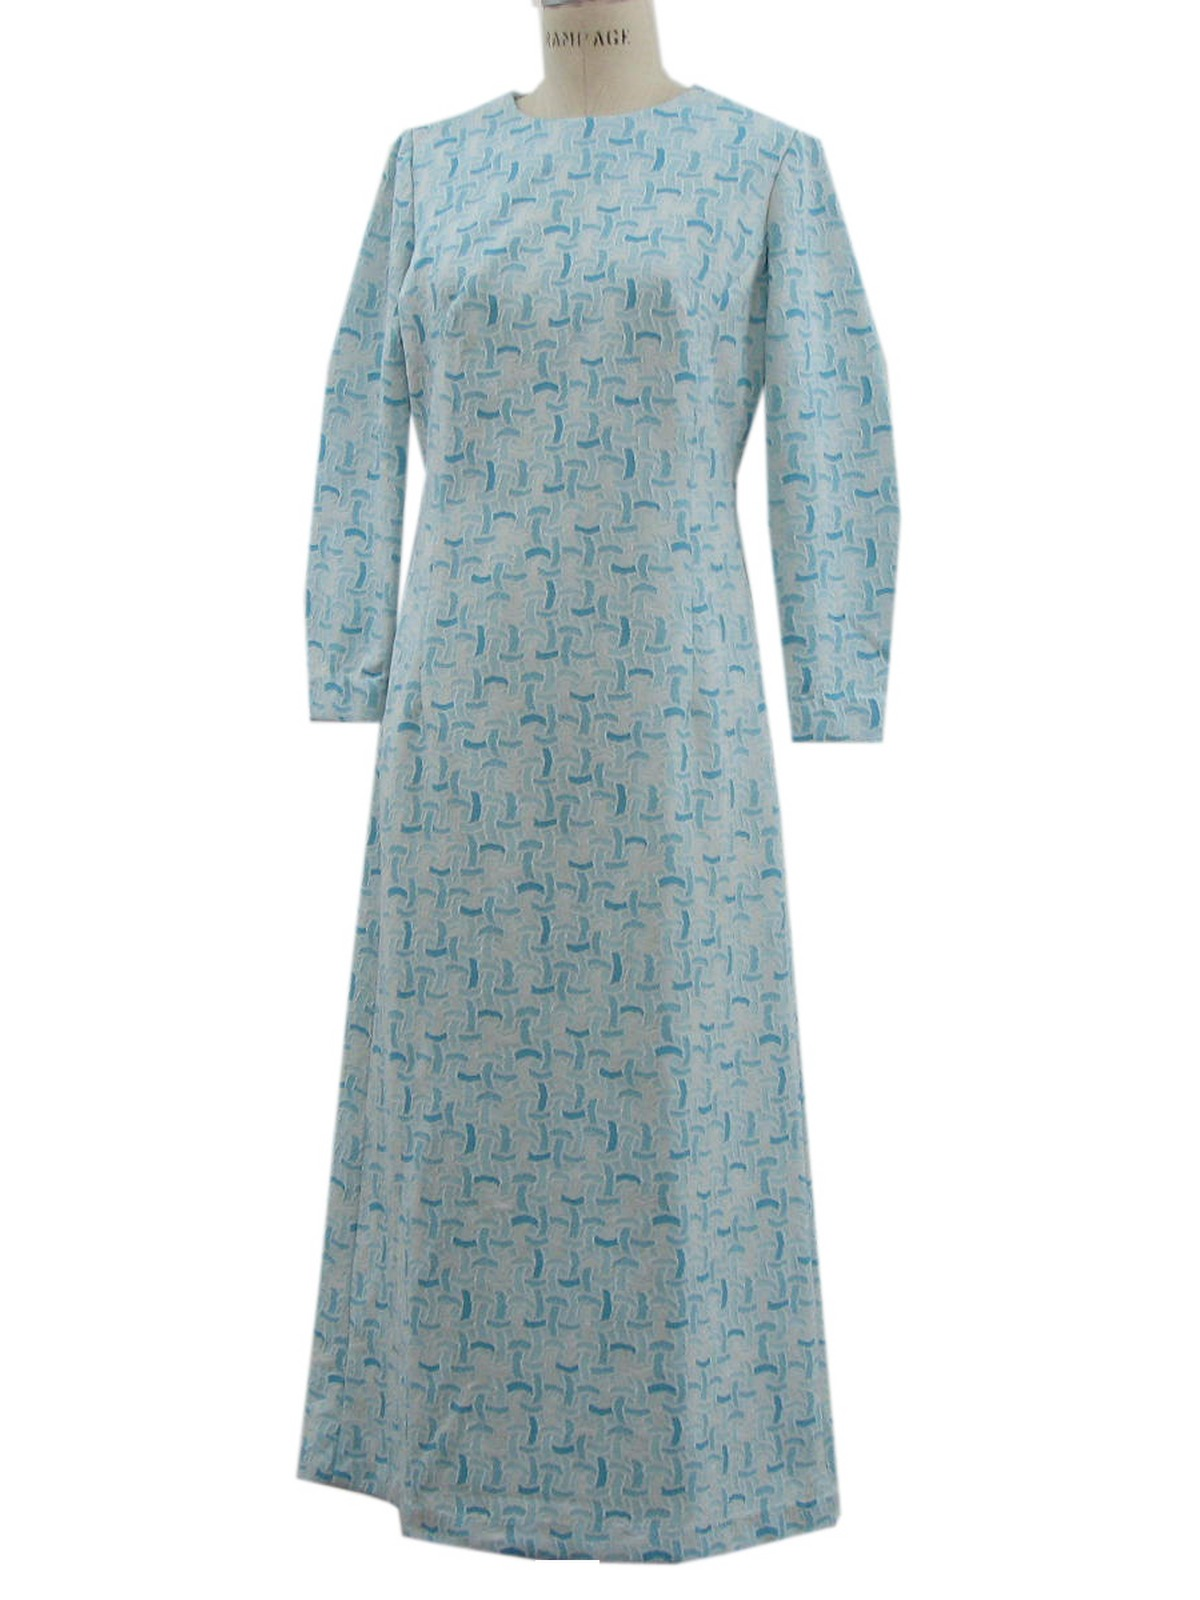 Long Sleeve Knit Dress Pattern : Vintage Sixties Dress: 60s -no label- Womens turquoise and white polyester kn...